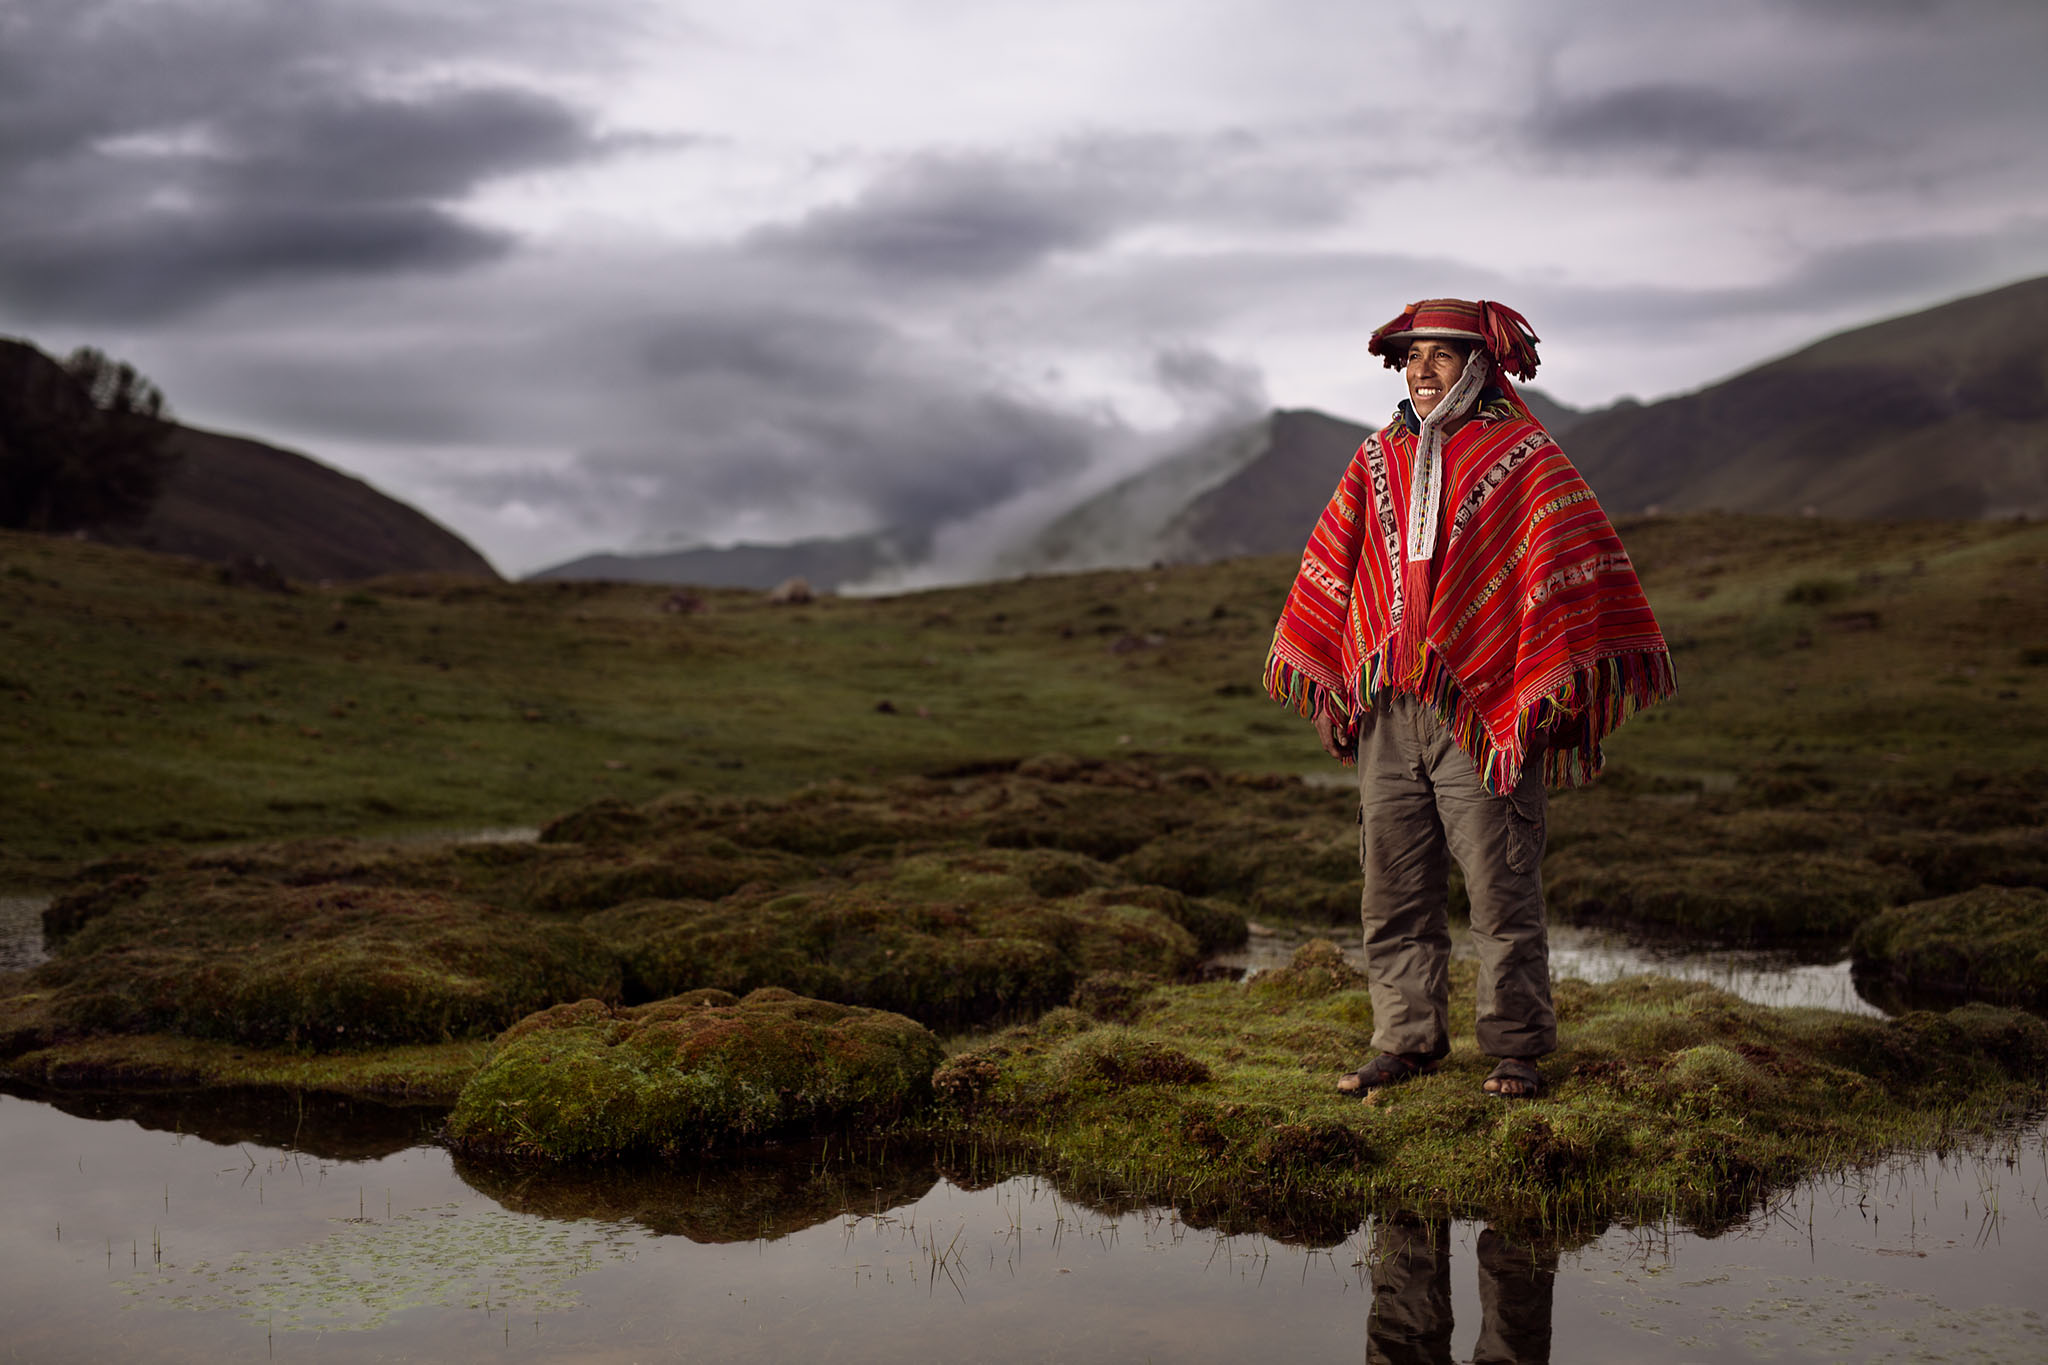 Augustin, a Peruvian farmer living at 4200 meters. Shot with Broncolor HS flash technology.